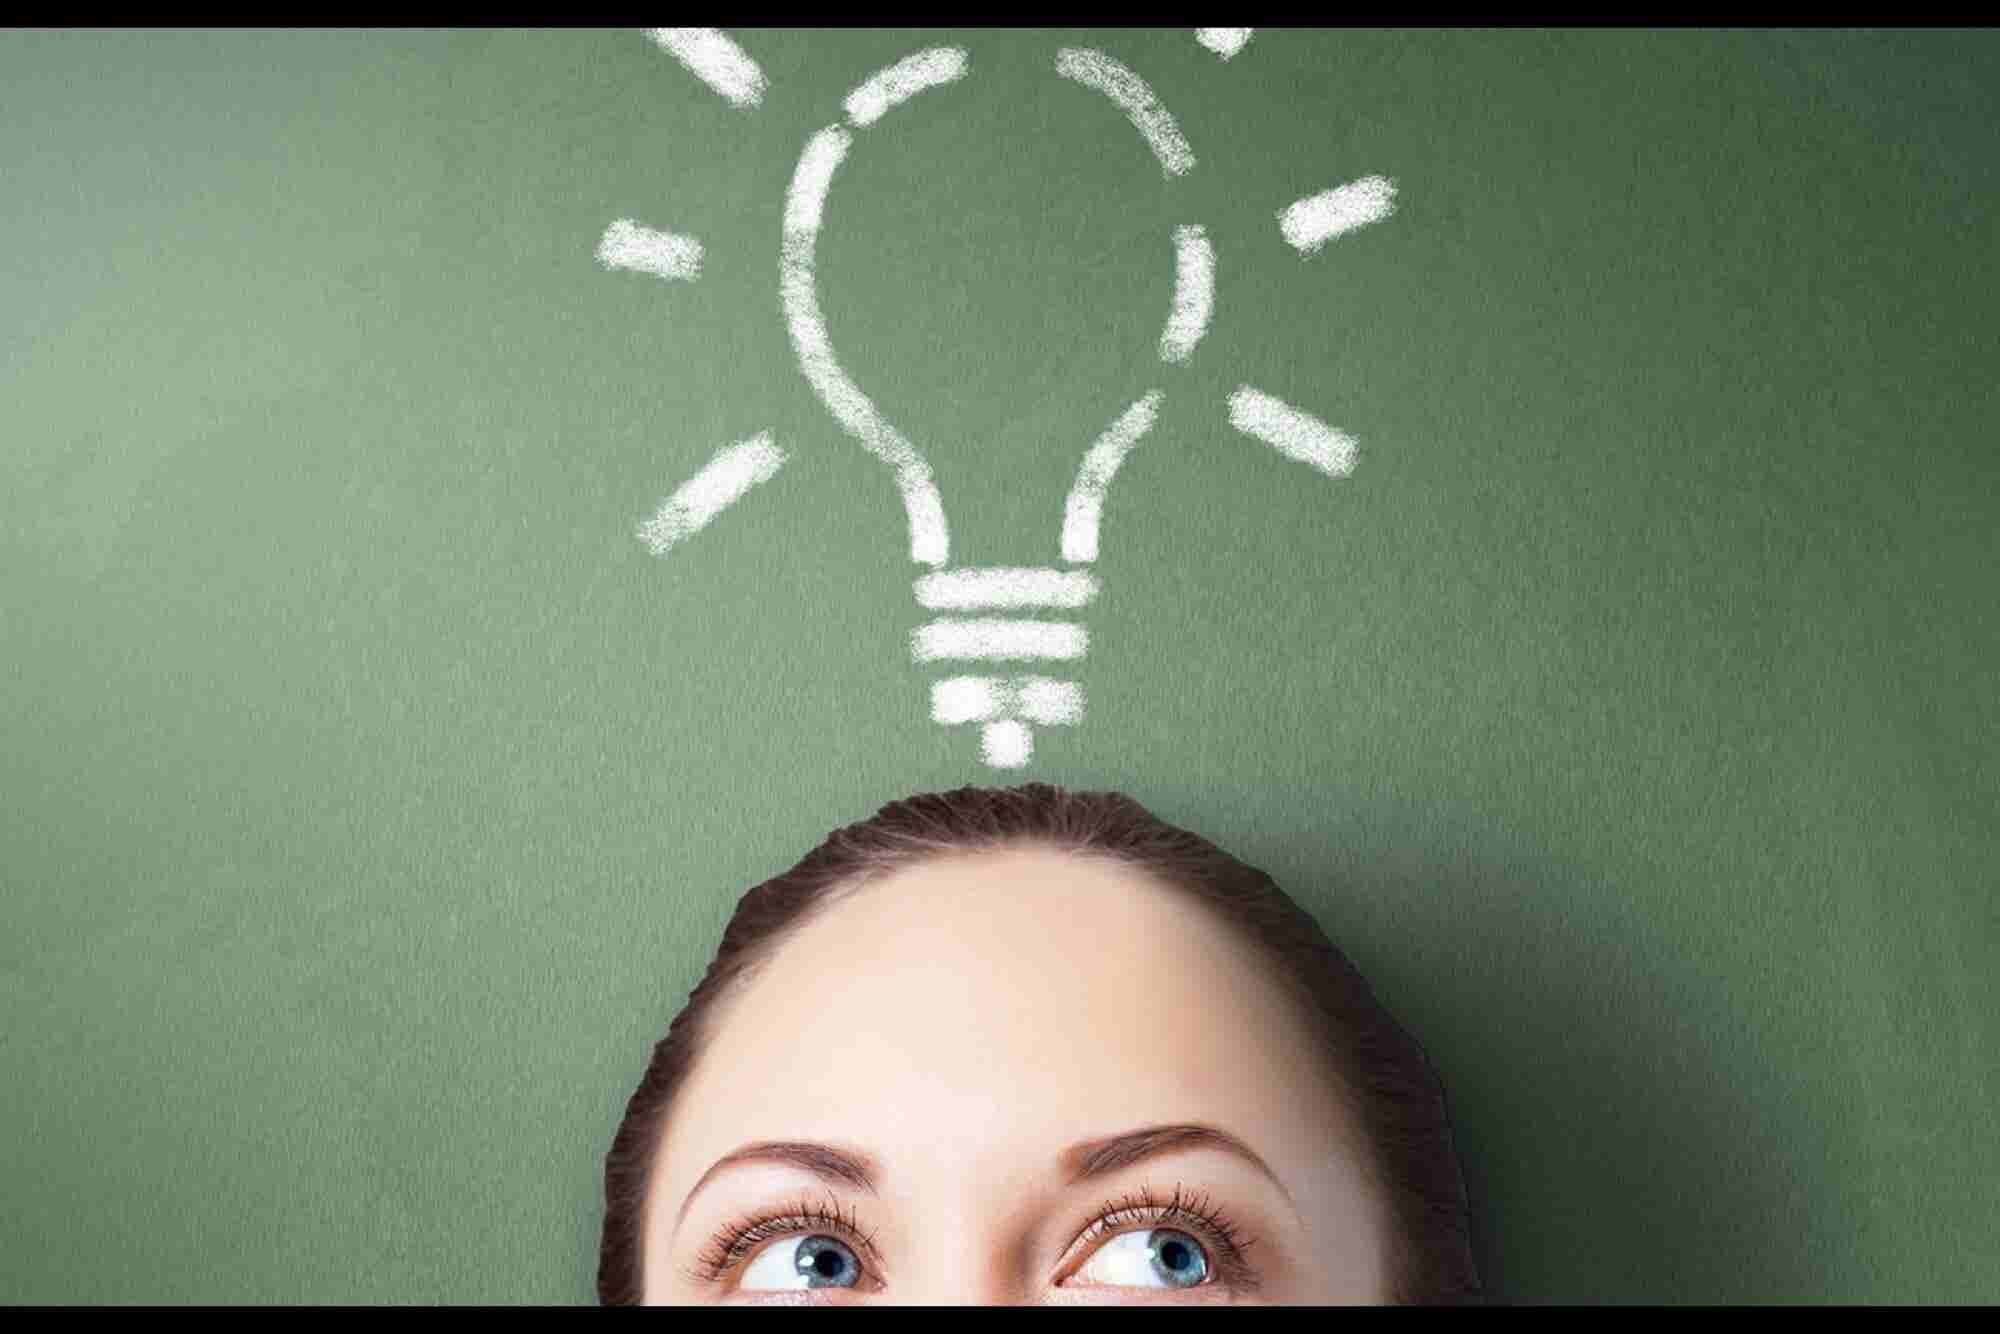 To Stay Innovative, Do These 3 Things: Your Weekly Tips Roundup